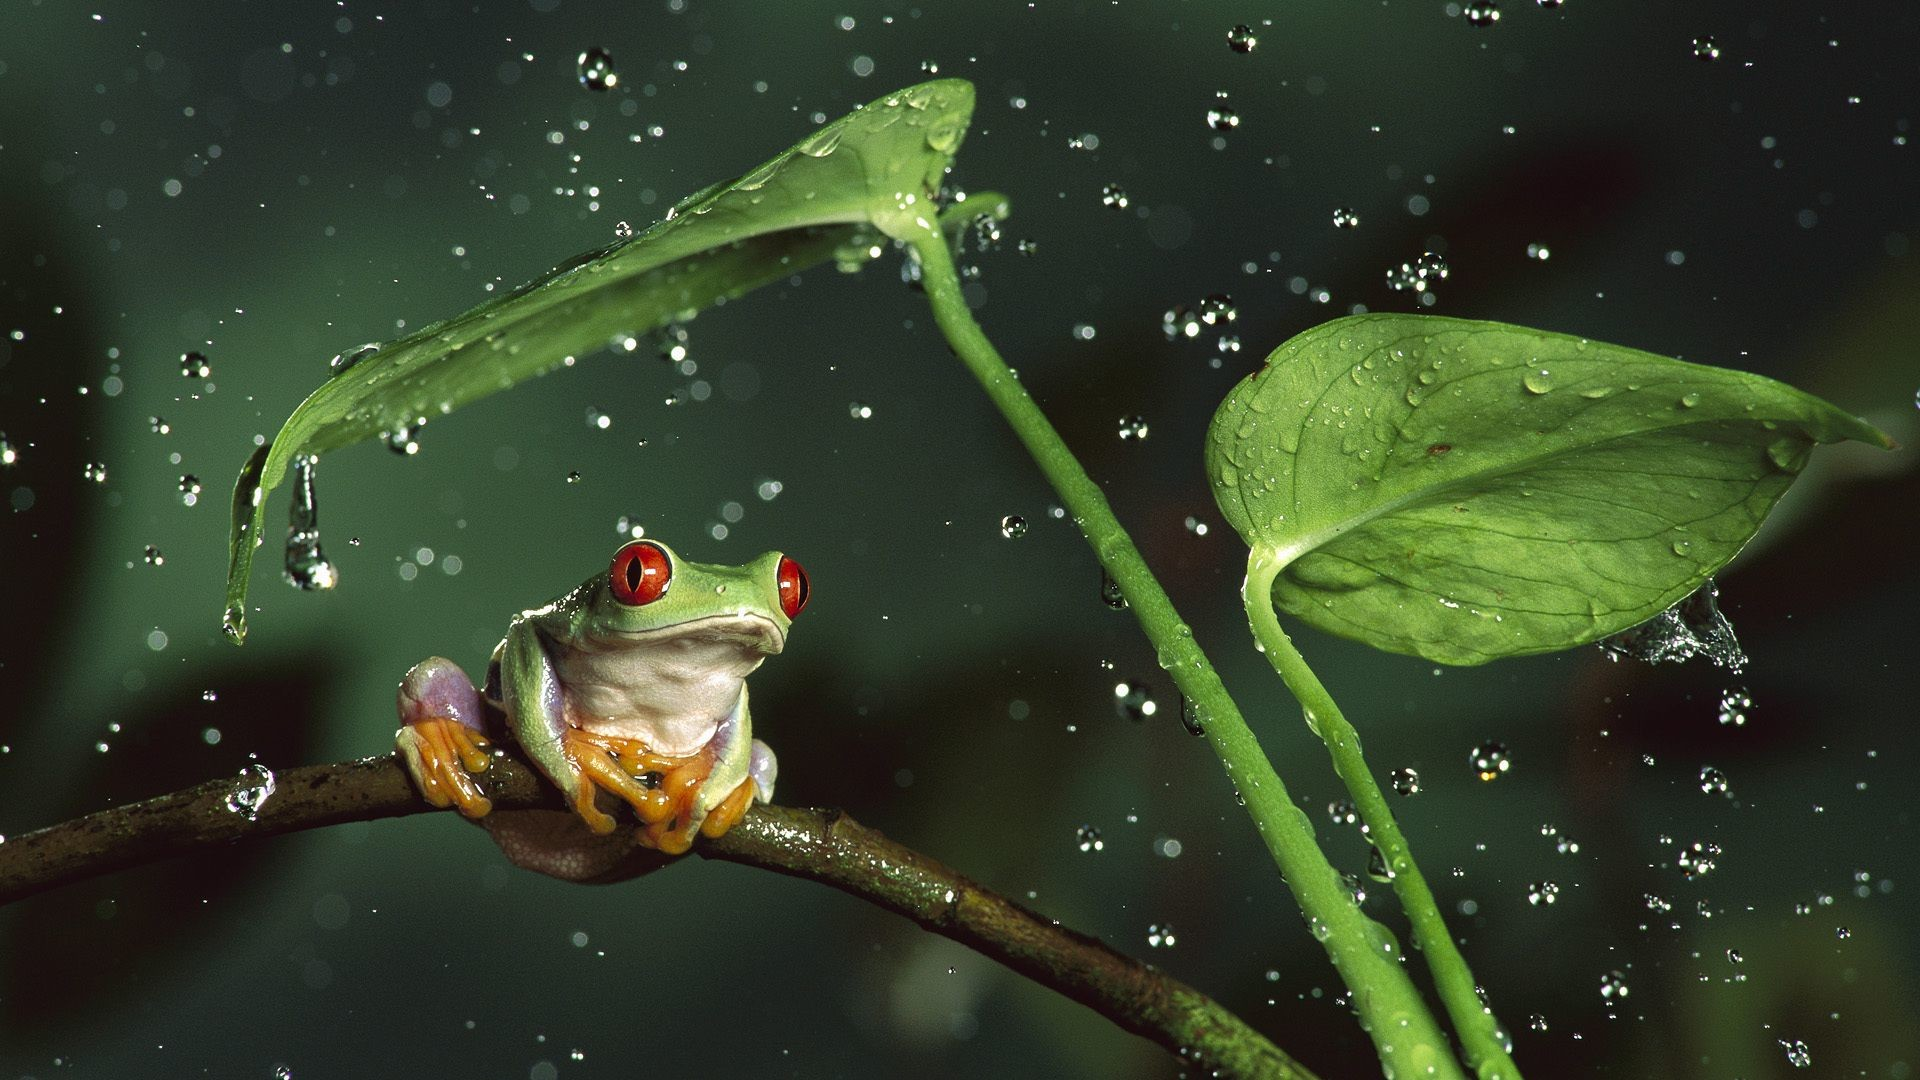 Res: 1920x1080, Tree Frog Wallpapers 17 - 1920 X 1080